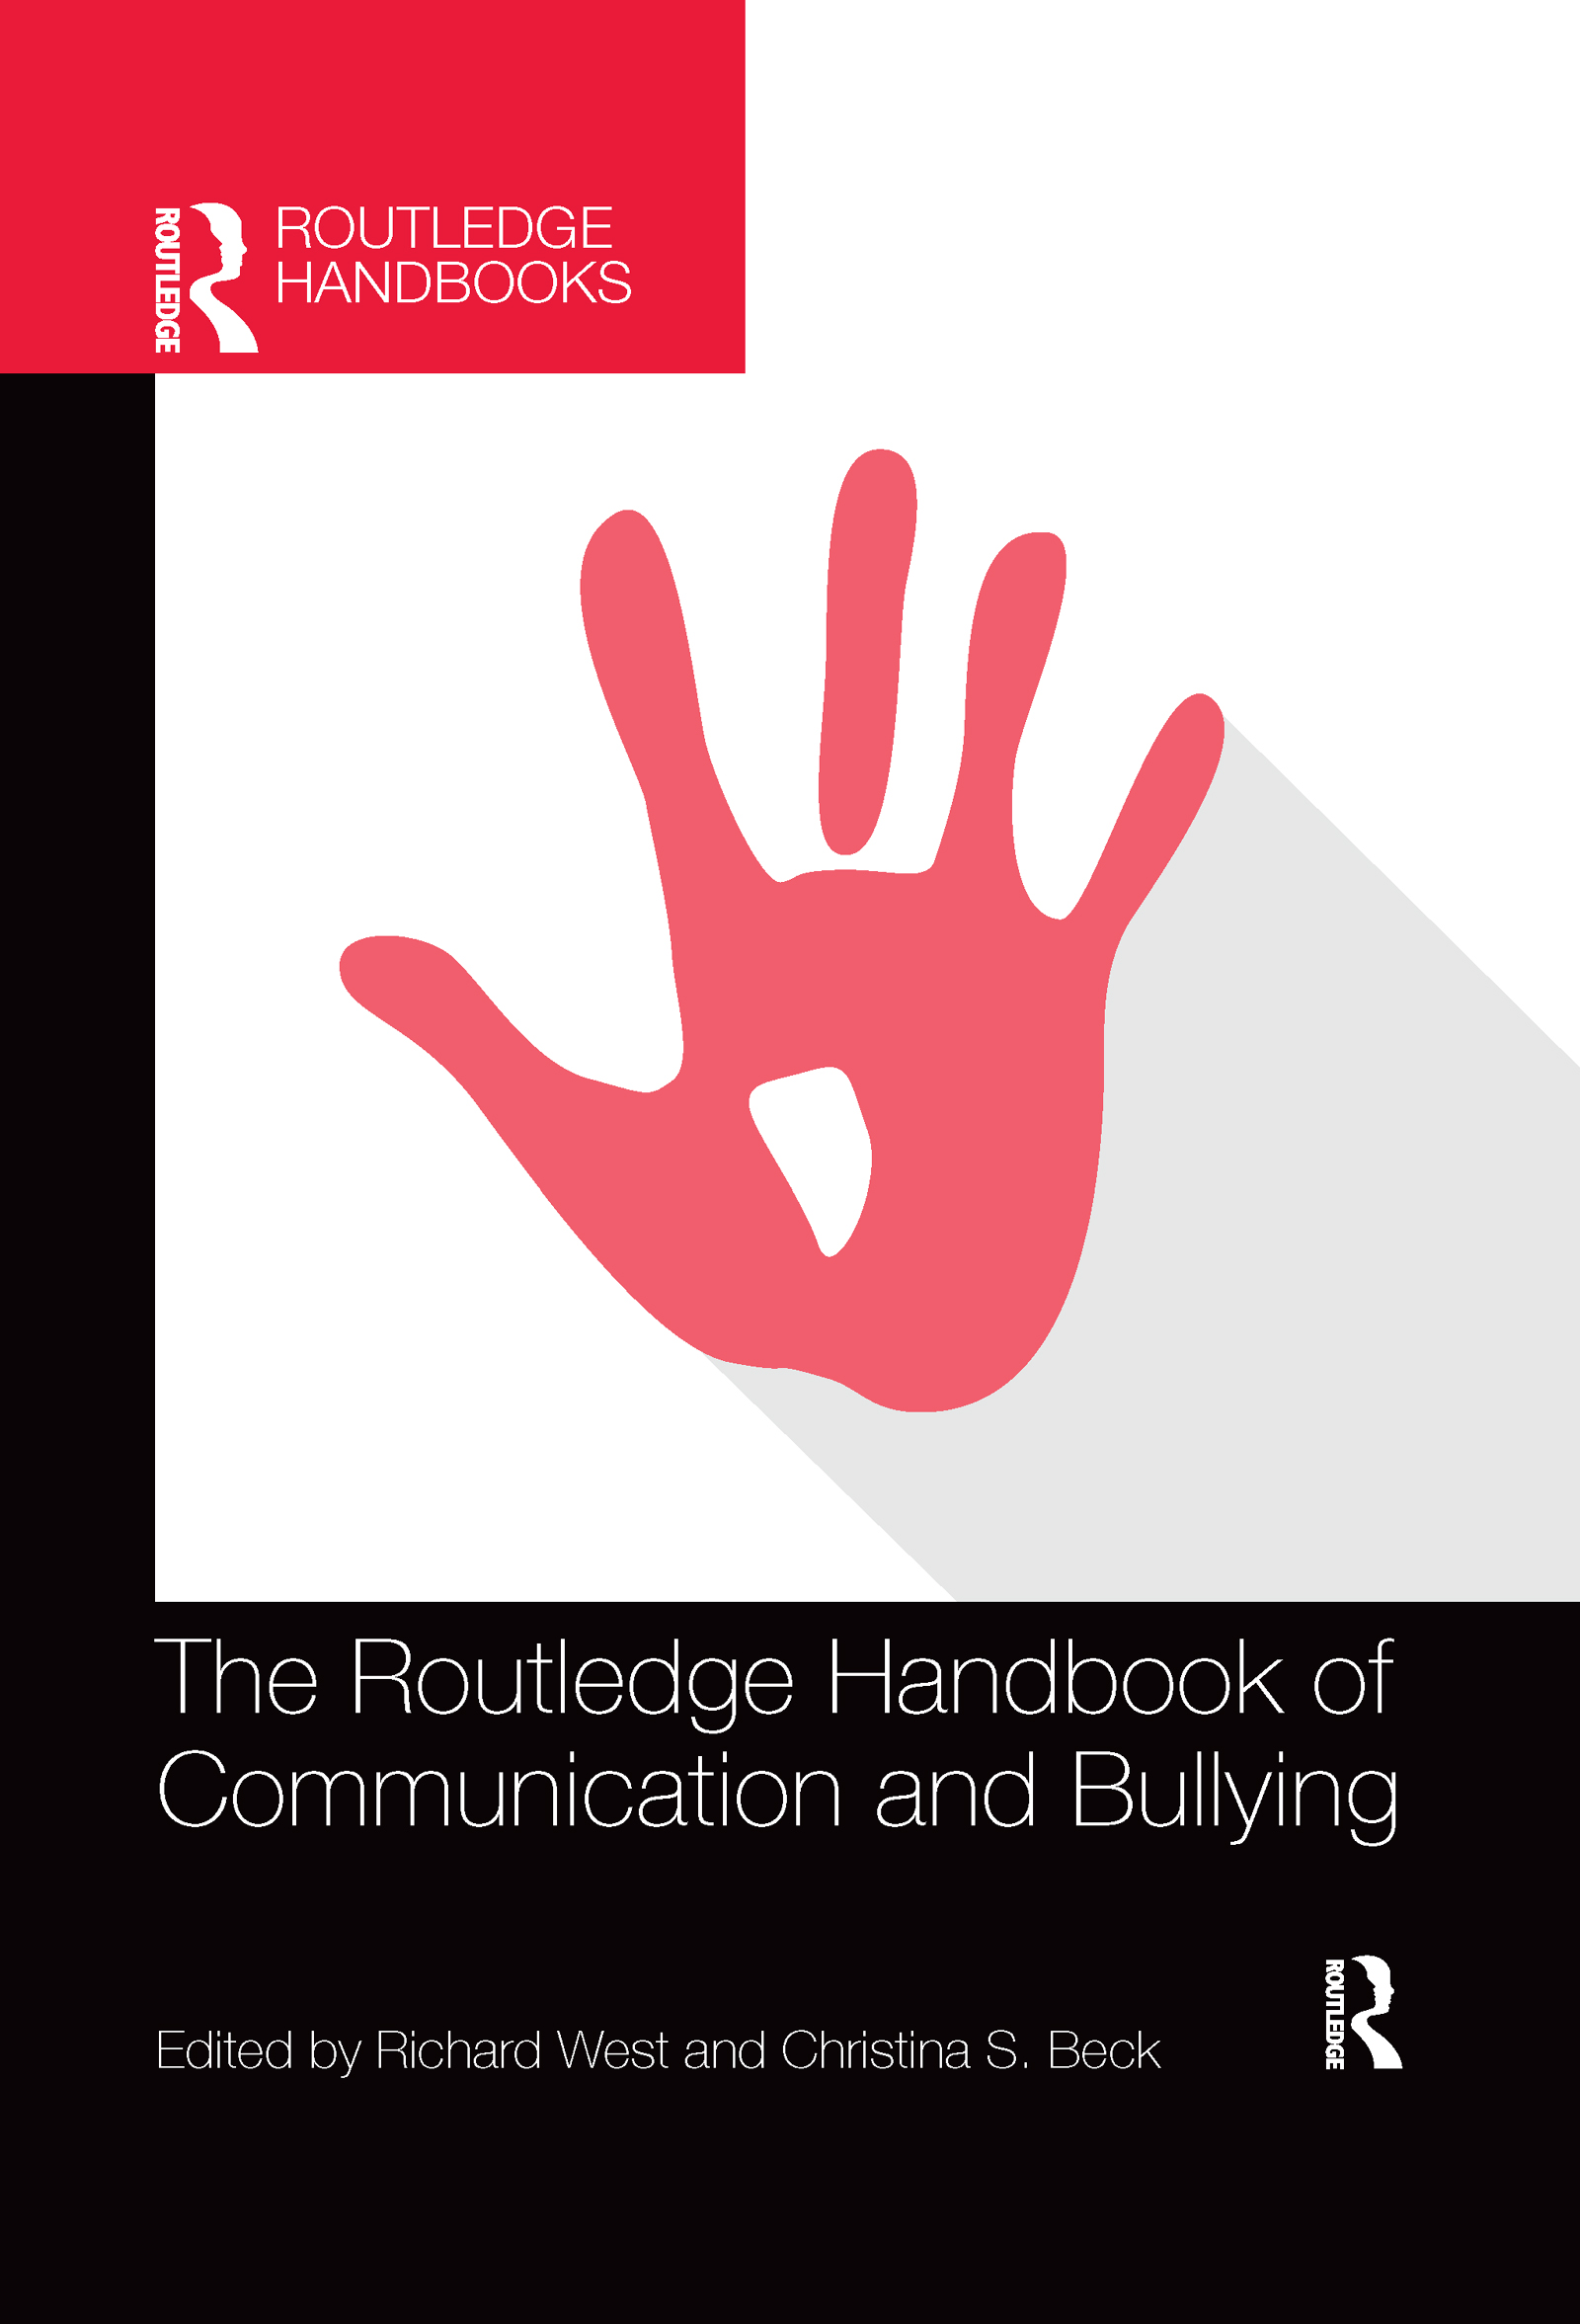 The Routledge Handbook of Communication and Bullying